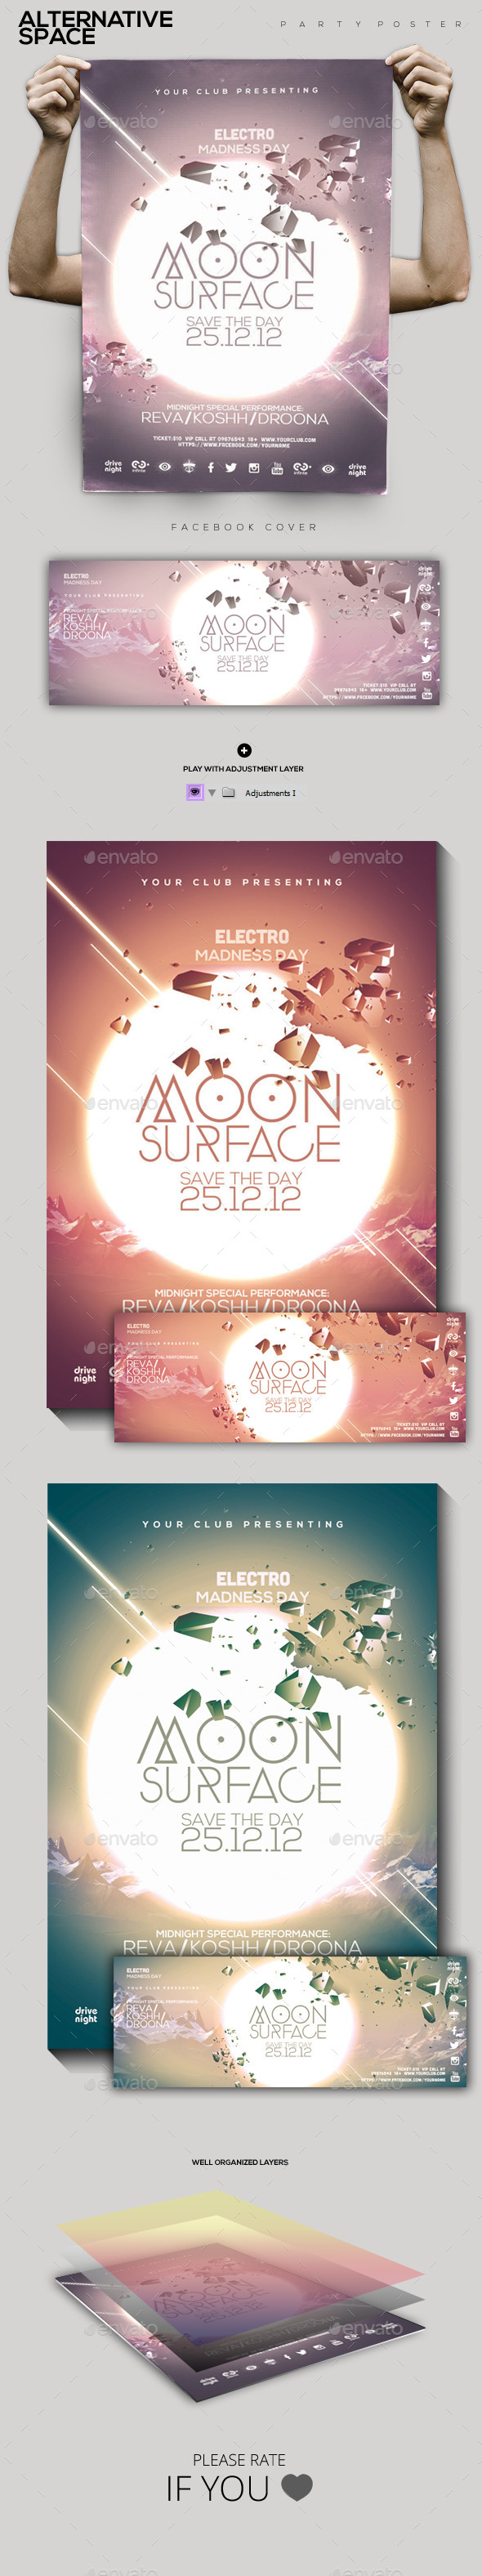 Moon Surface Party Flyer Poster